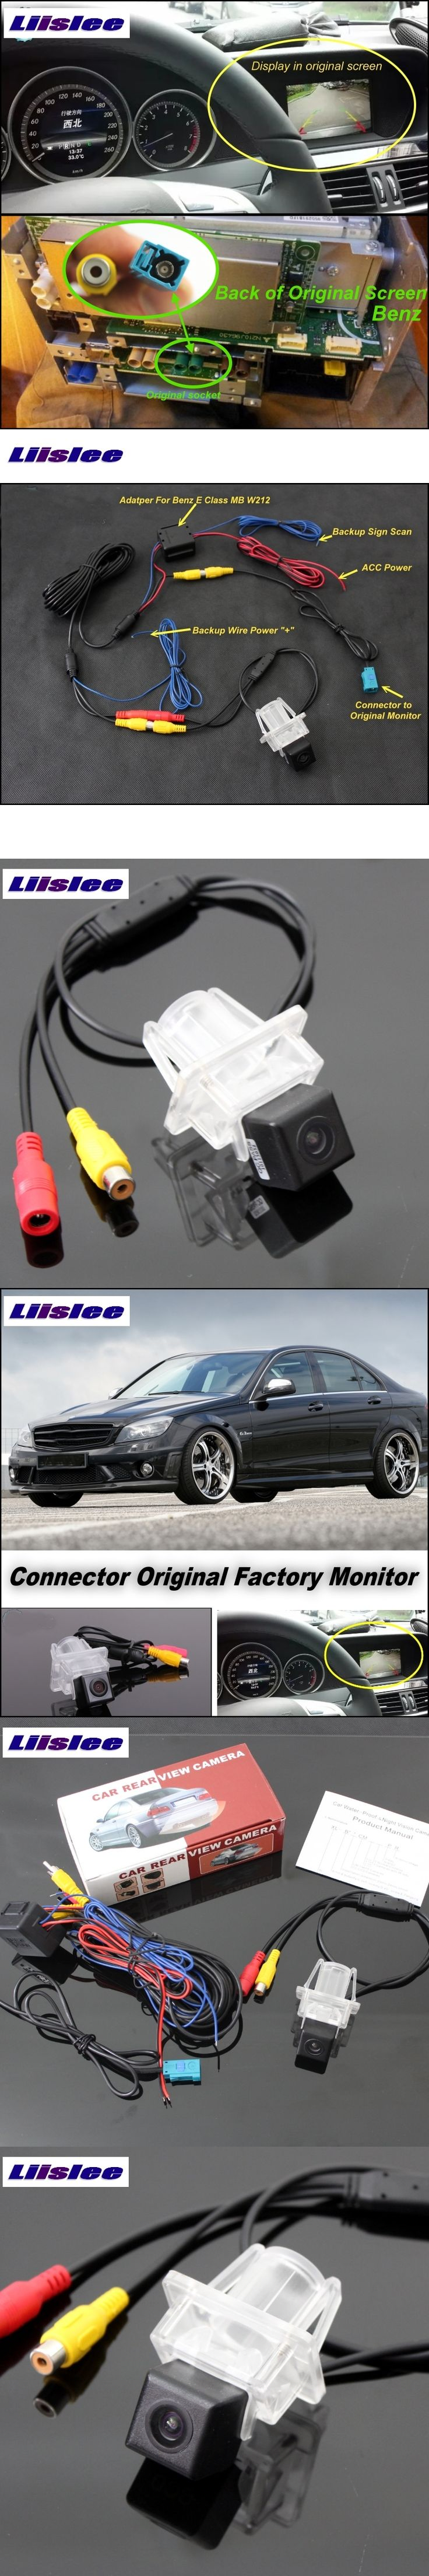 127 best Car Electronics images on Pinterest